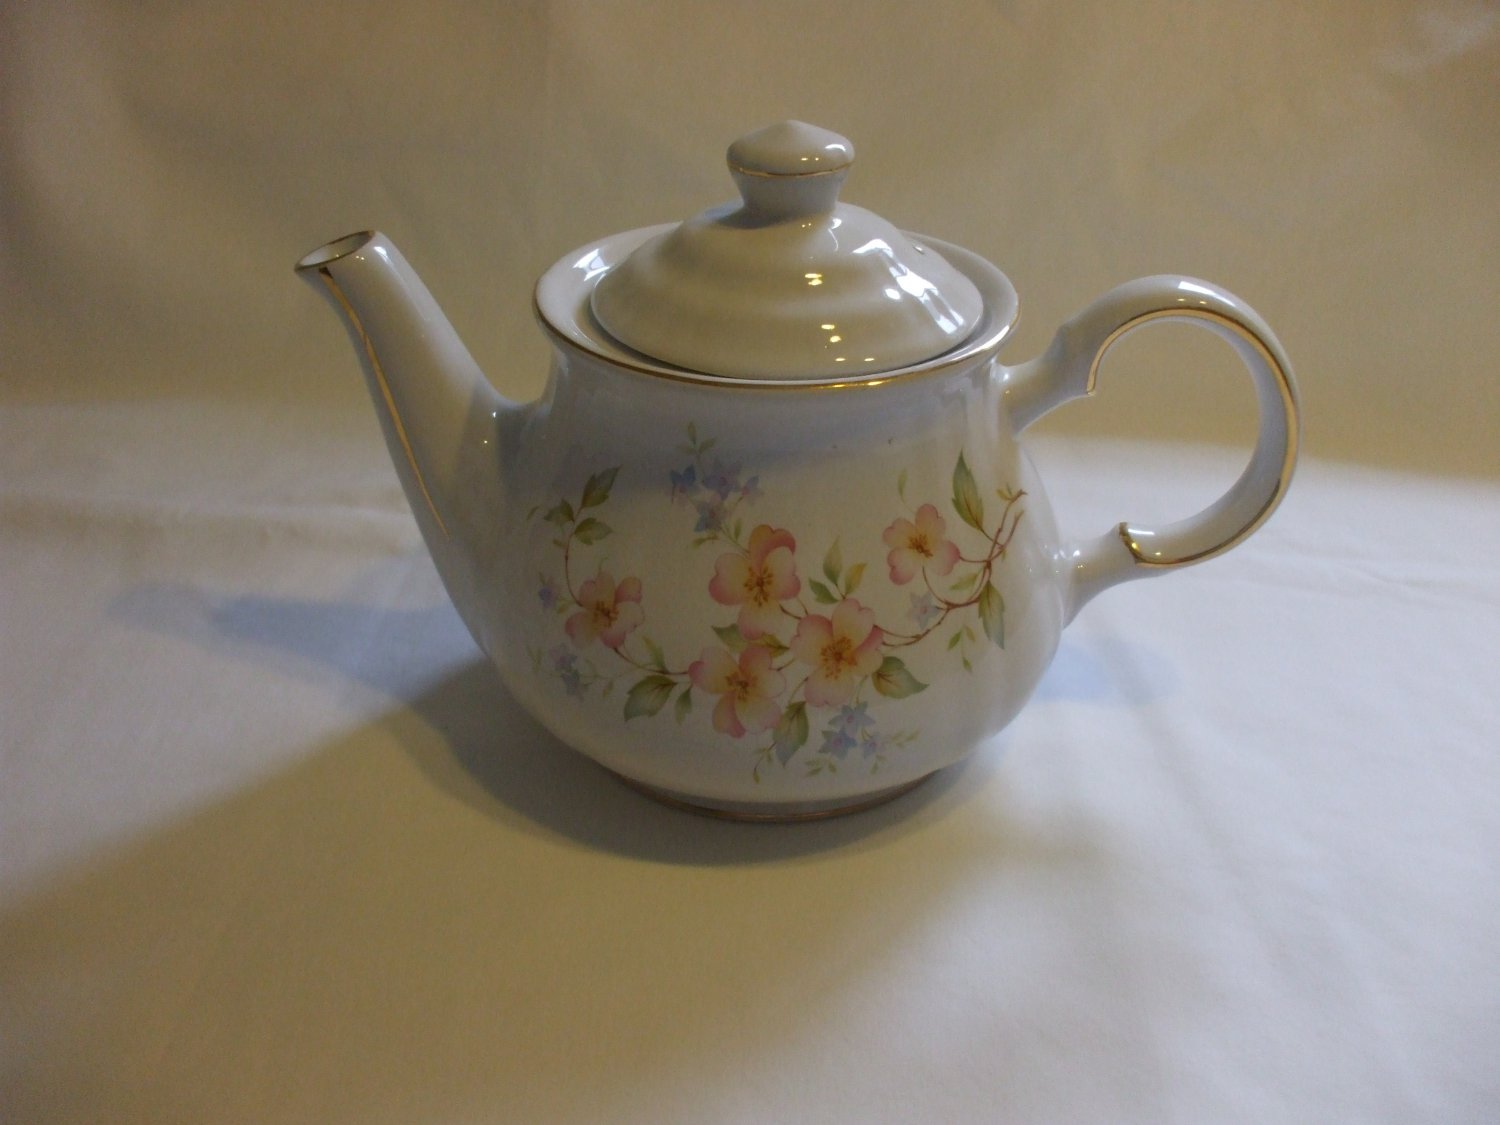 White Porcelain Teapot With Flower Motifs And Gold Trim Hold 4 Cups Liquid Royal oak